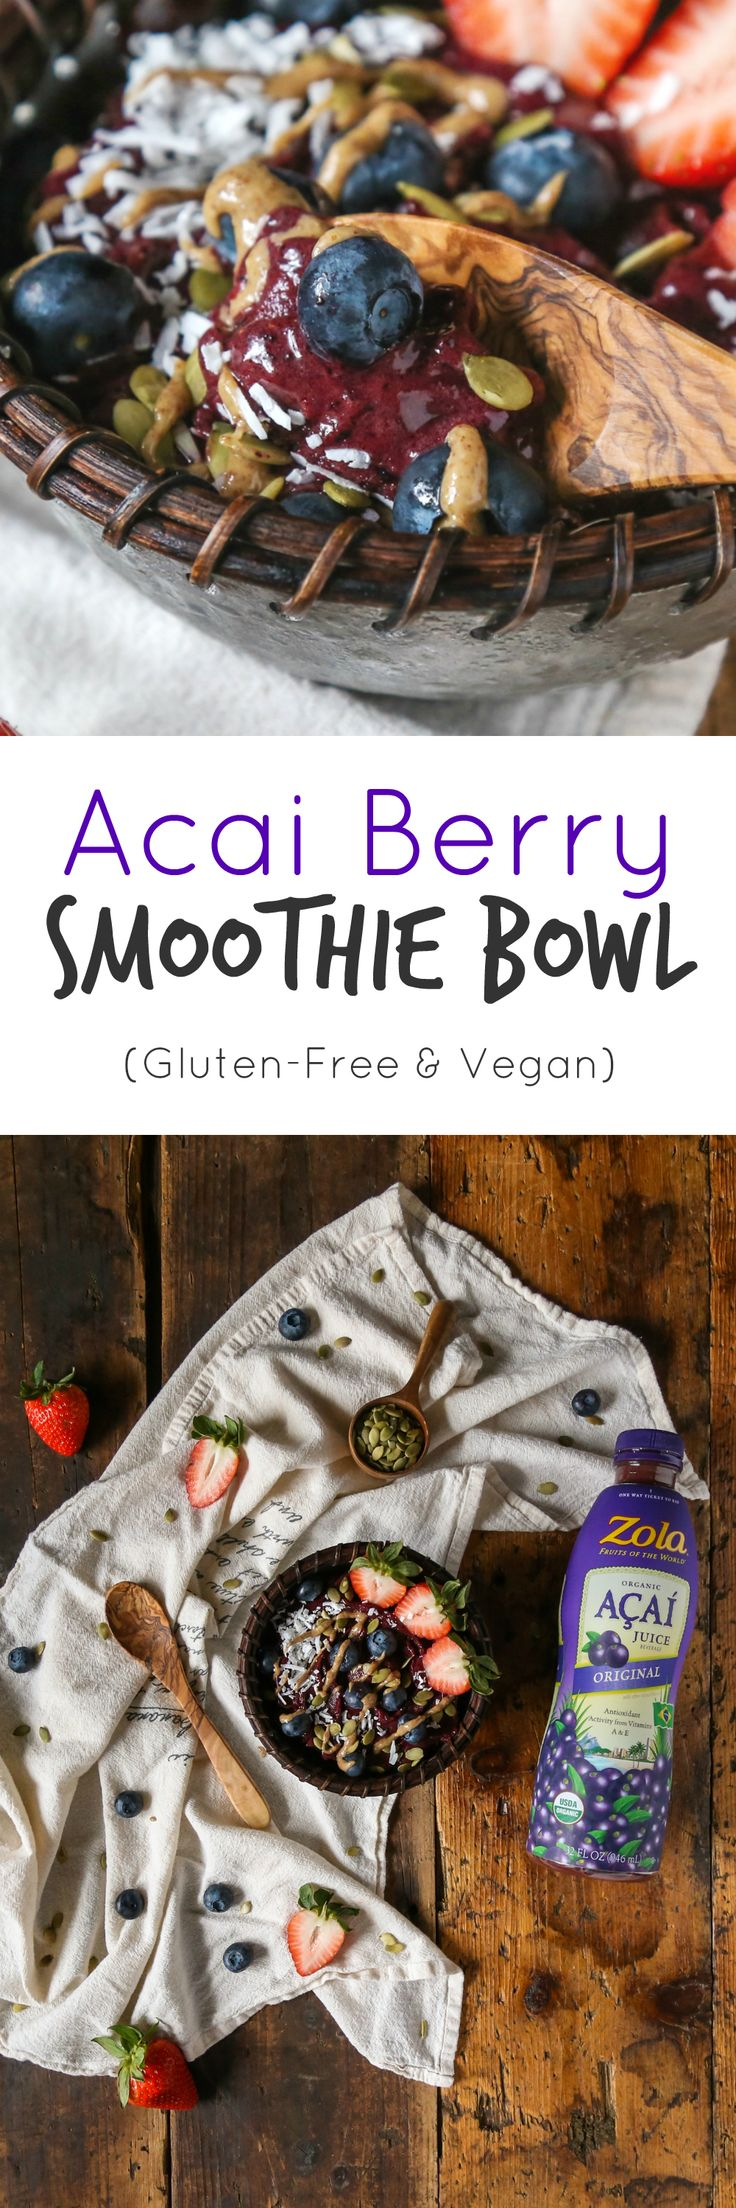 Acai Berry Smoothie Bowl - The Plant Philosophy #smoothies #smoothie #smoothiebowl #recipe #breakfast #Healthybreakfast #snack #superfood #onthego #recipe #gf #vegan #fruit #Fruitrecipes #Acai #Berry